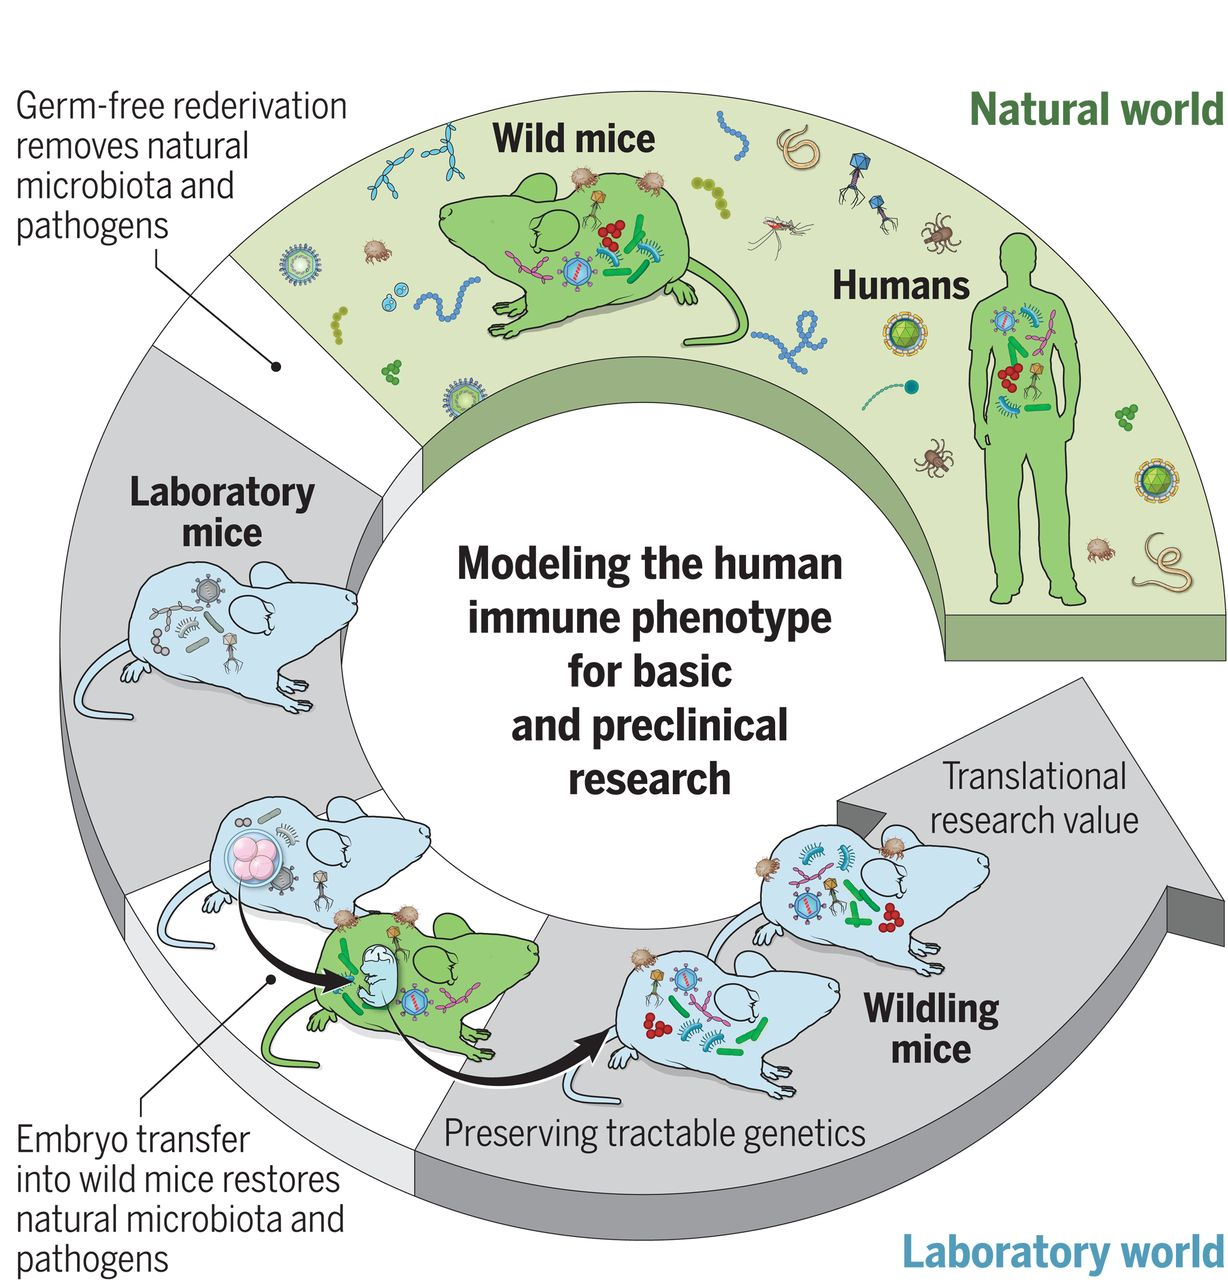 Natural microbes can help reduce shortcomings of current mouse models. The C57BL/6 genotype was preserved while generating a natural microbiome by using wild mice as surrogates for C57BL/6 embryos. The resulting colony of wildings carried a microbiome that was resilient and stable over time, through challenges. In immunological tests, wildling mice had higher translational research value. / Credit: Science 2019  Rosshart et al